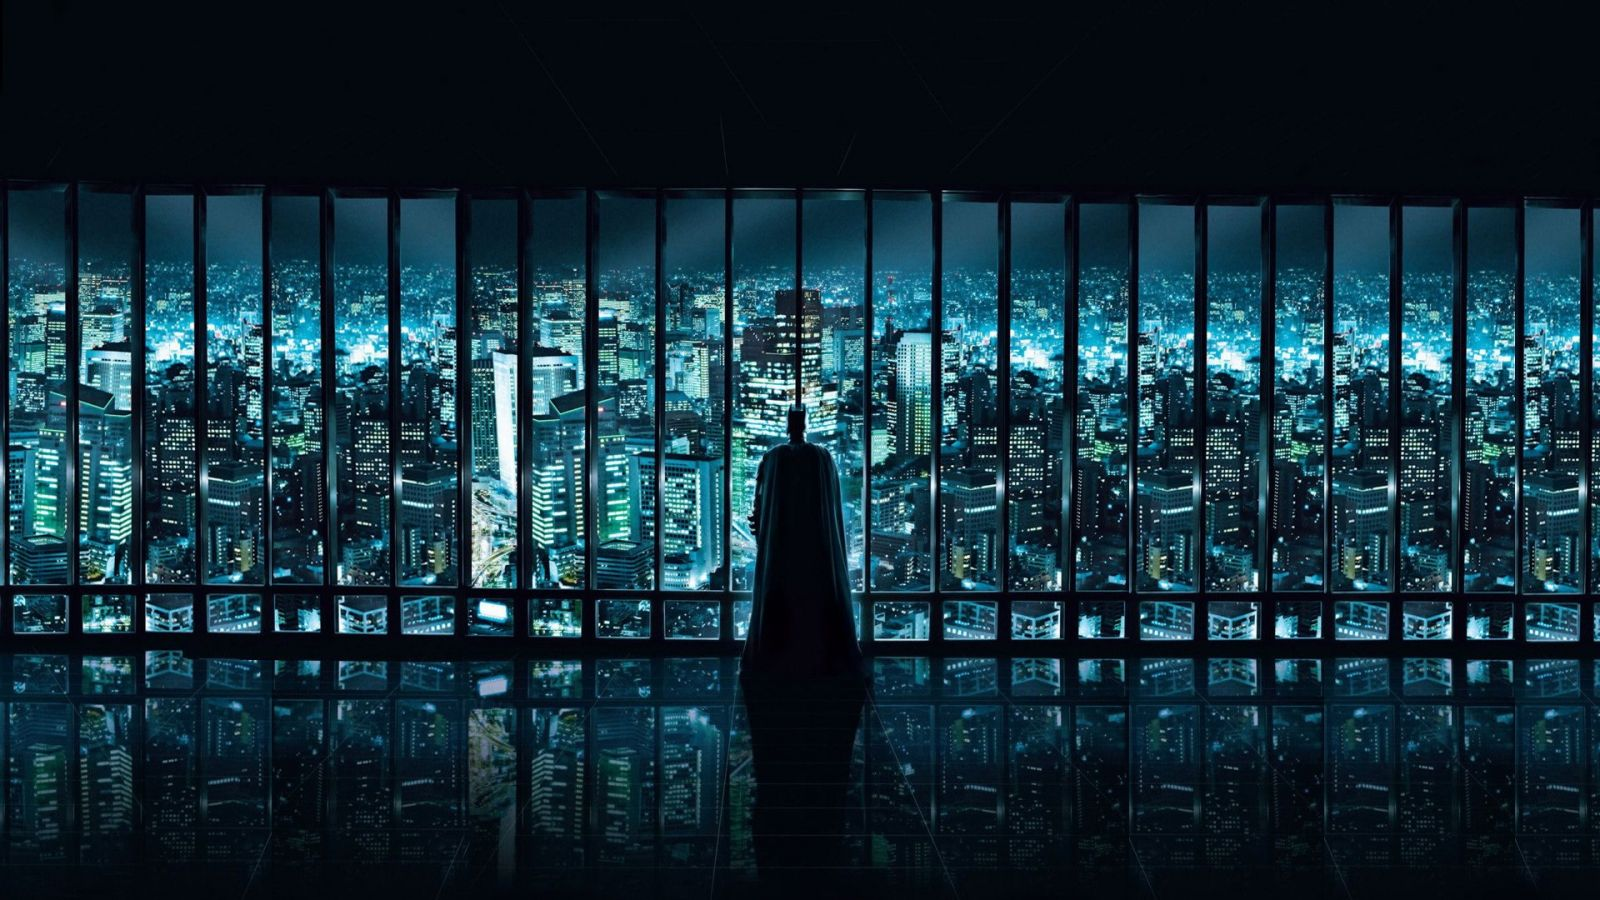 Free Download Definition Wallpapers Hd 19201080 Dark Knight Hd